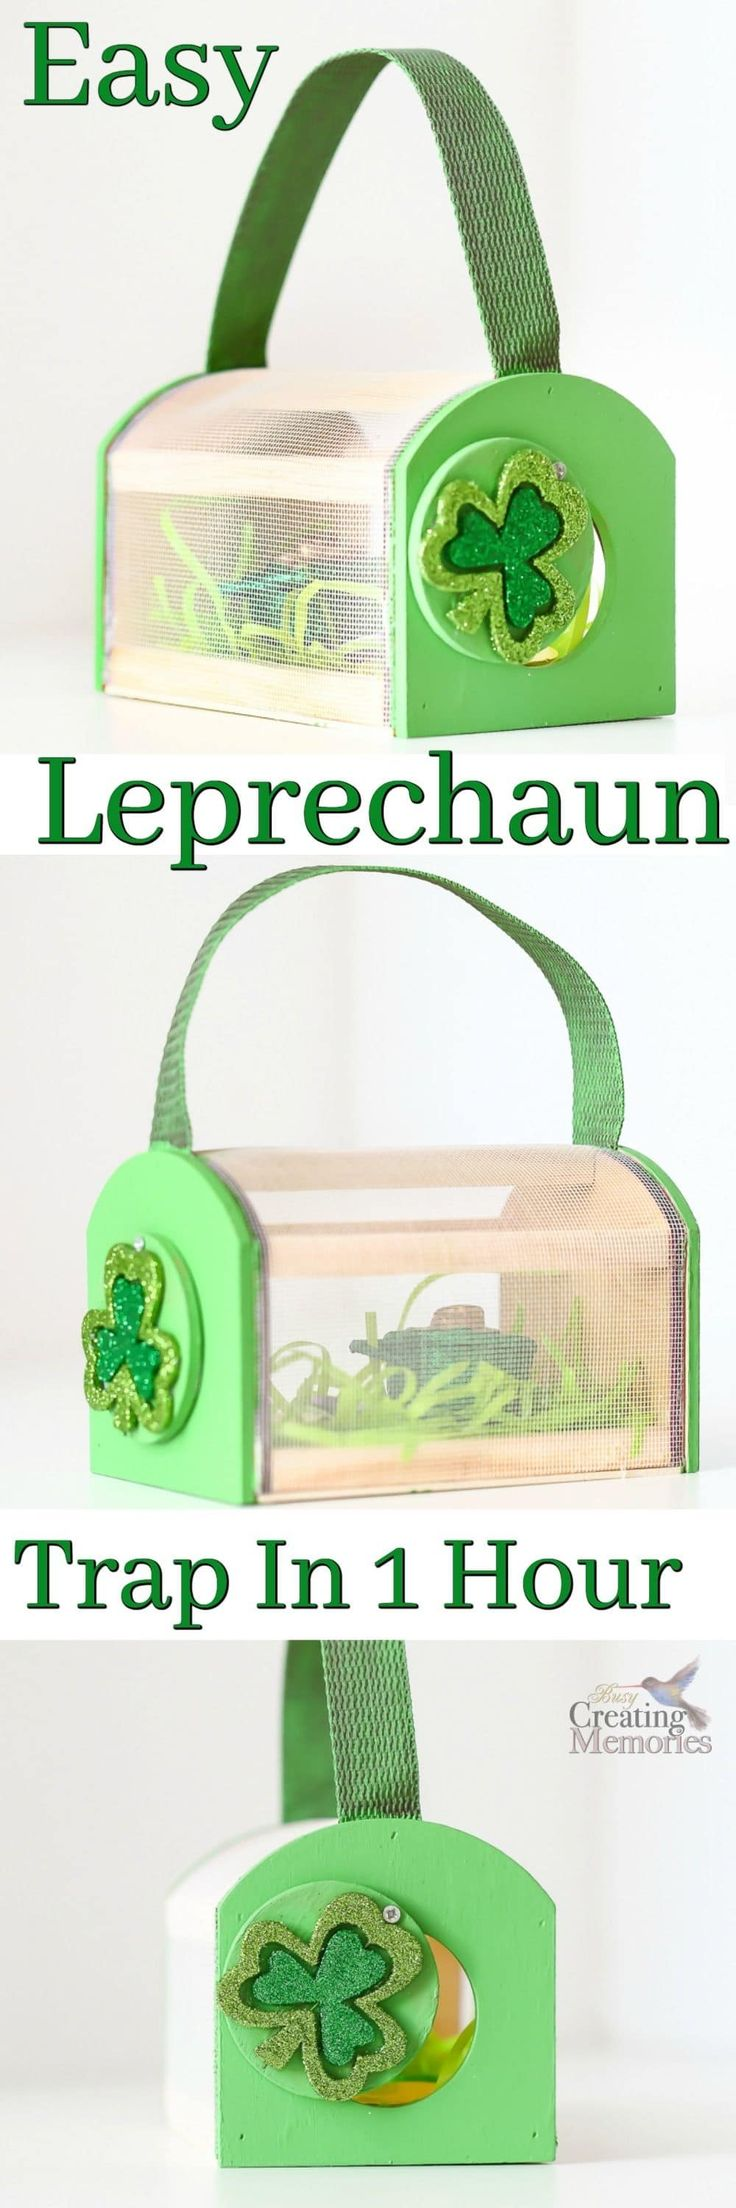 Uncategorized Kids Leprechaun best 25 leprechaun trap ideas on pinterest leperchaun bring the magic of st patricks day to life with our easy project for